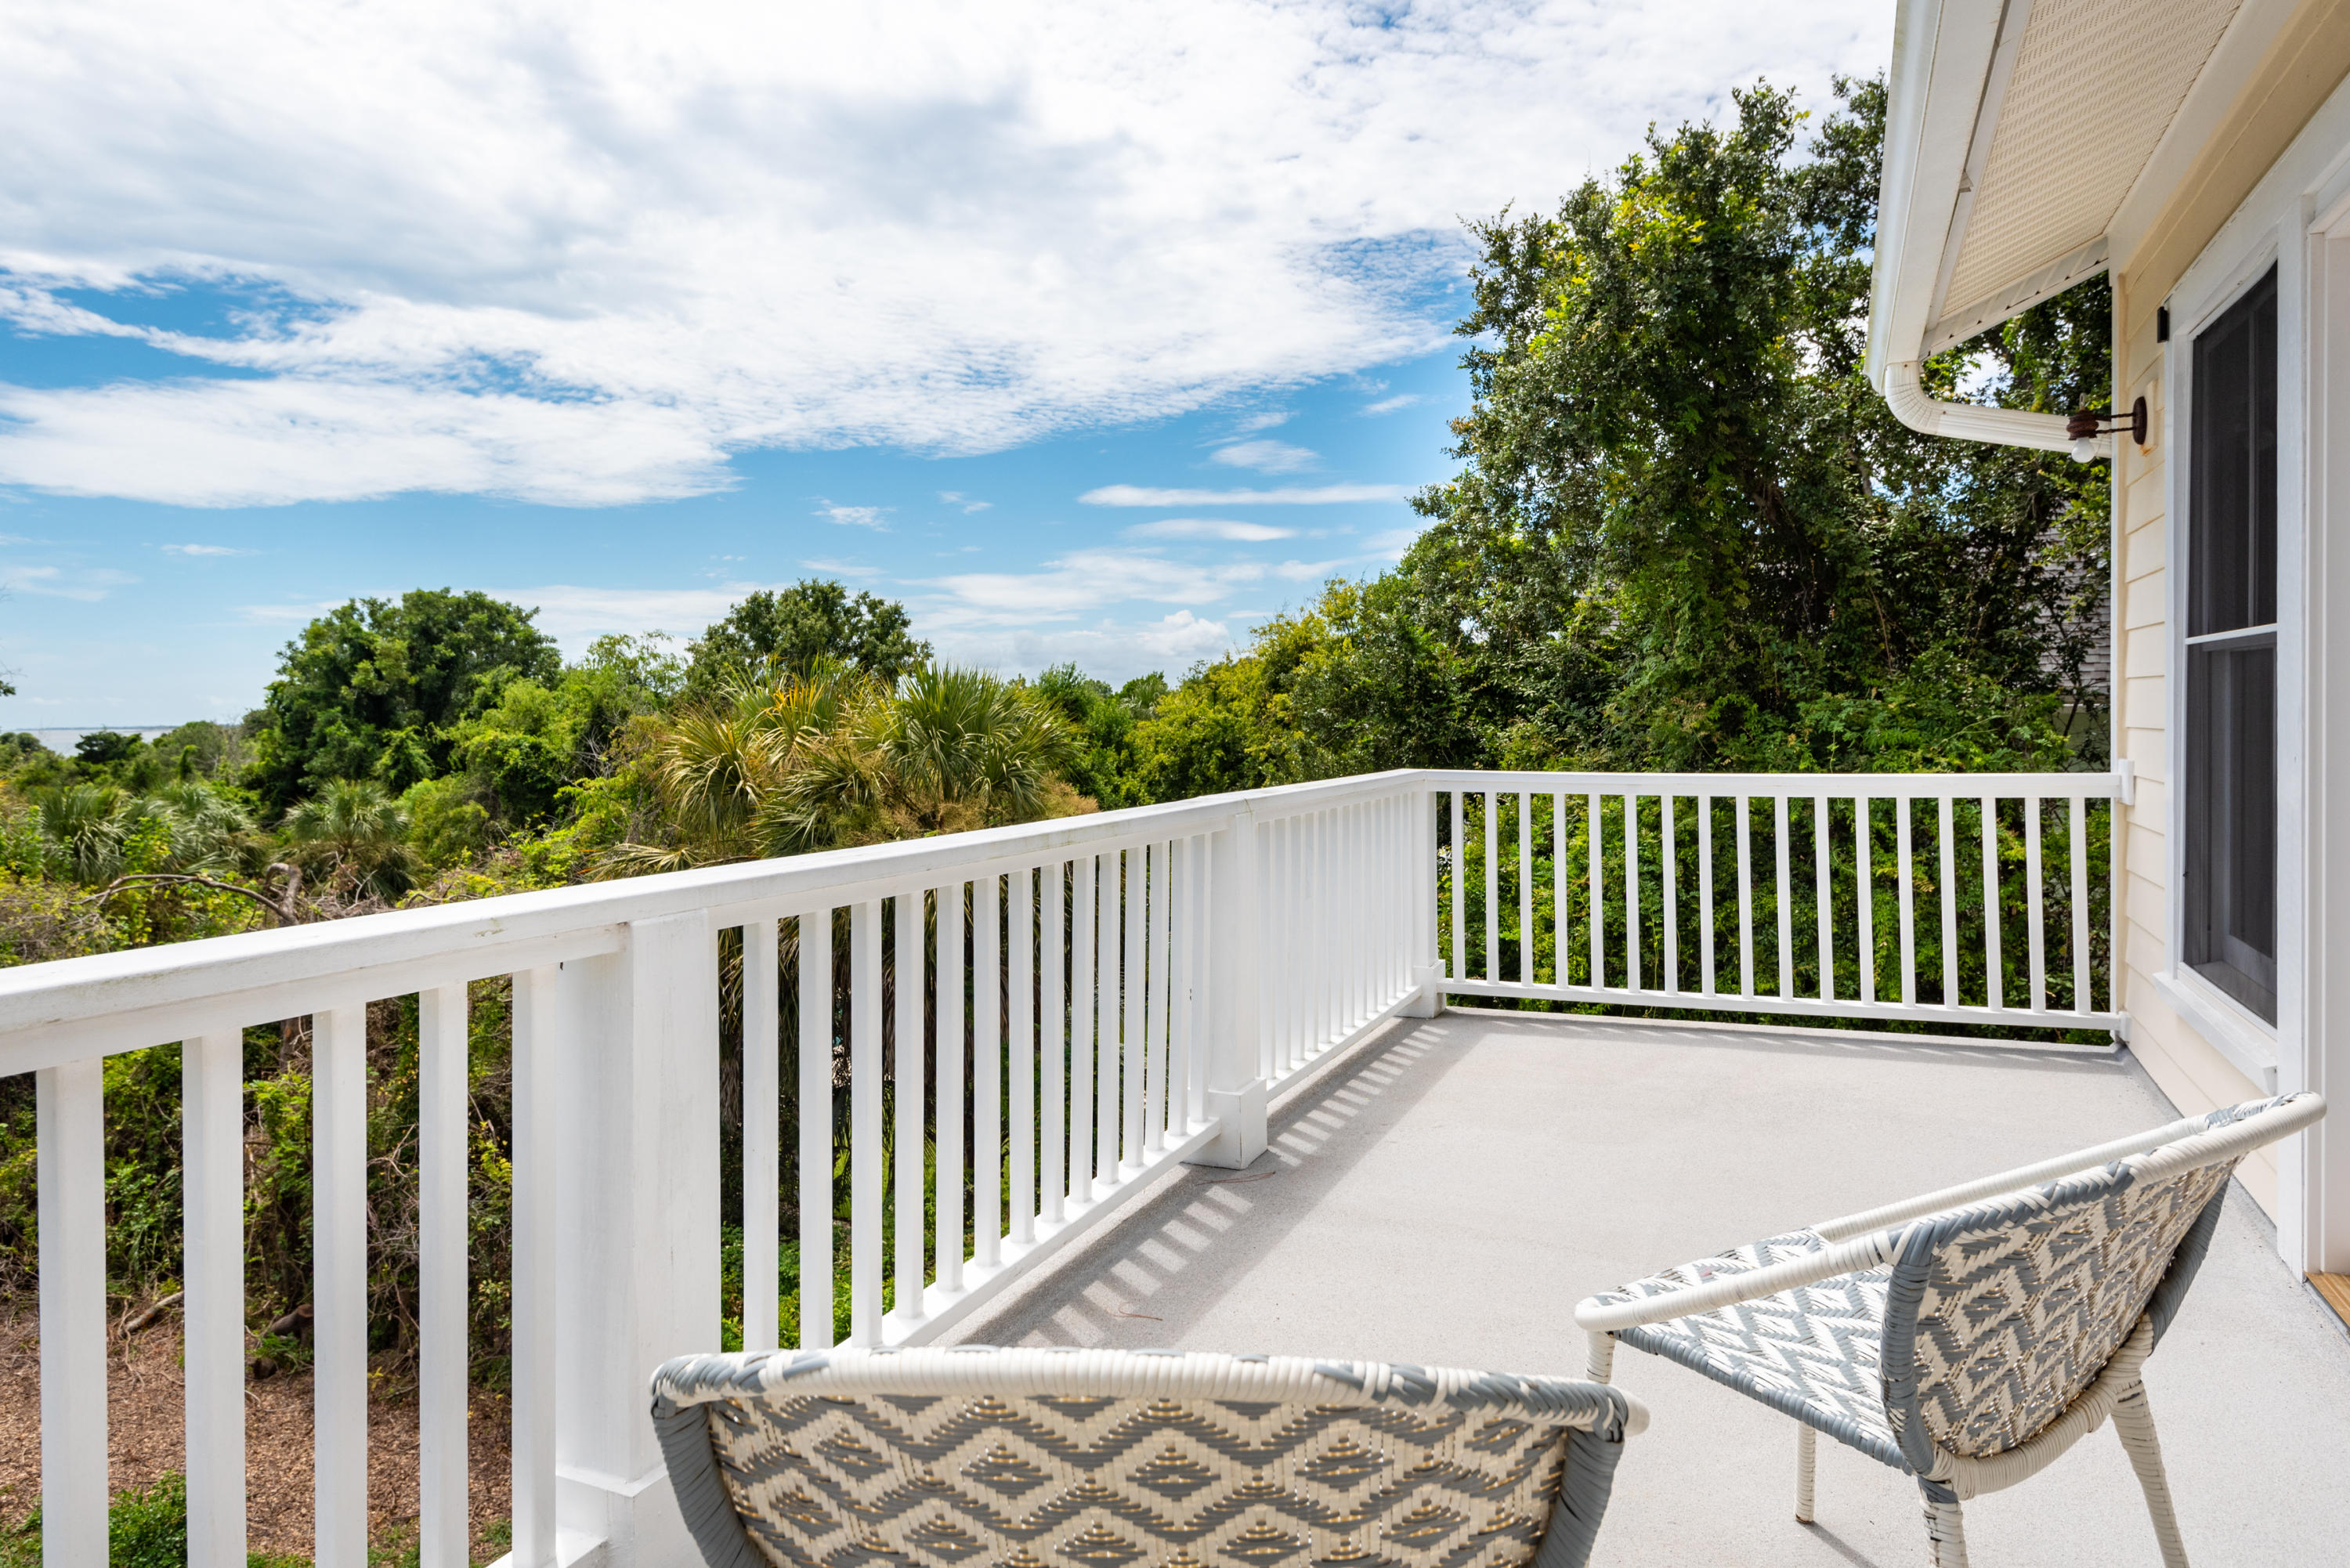 Sullivans Island Homes For Sale - 1651 Atlantic, Sullivans Island, SC - 6